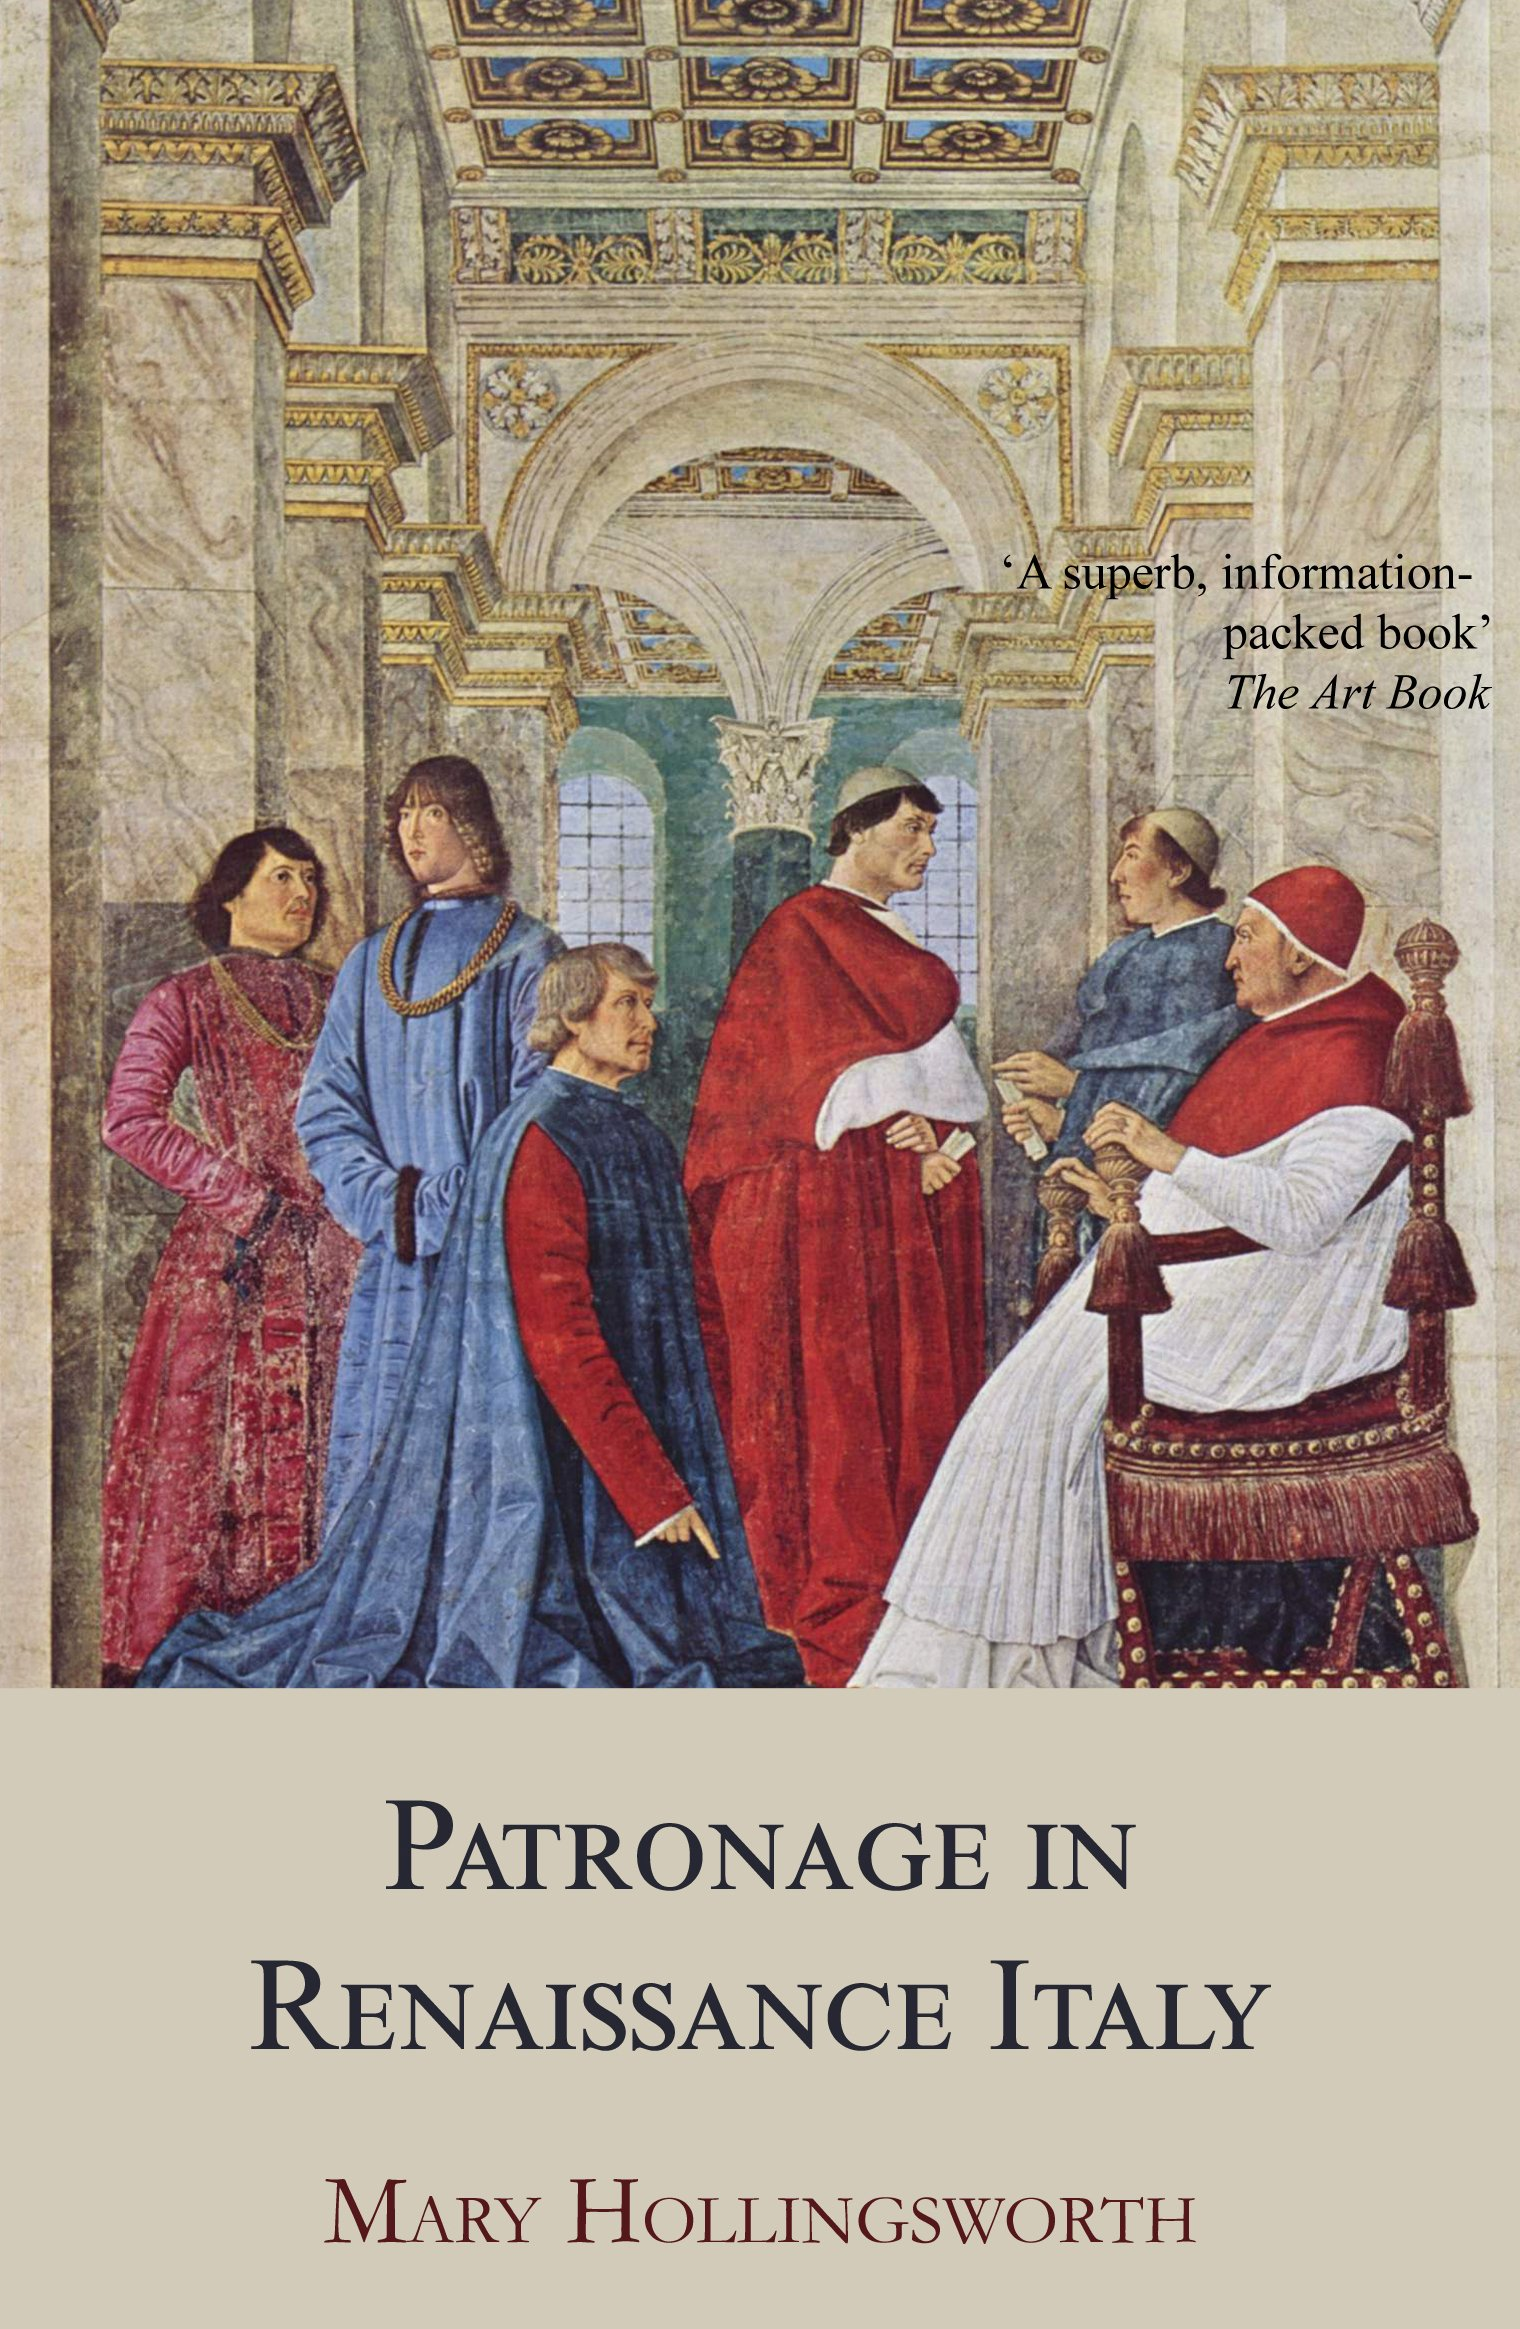 Patronage in Renaissance Italy: From 1400 to the Early Sixteenth Century por Mary Hollingsworth